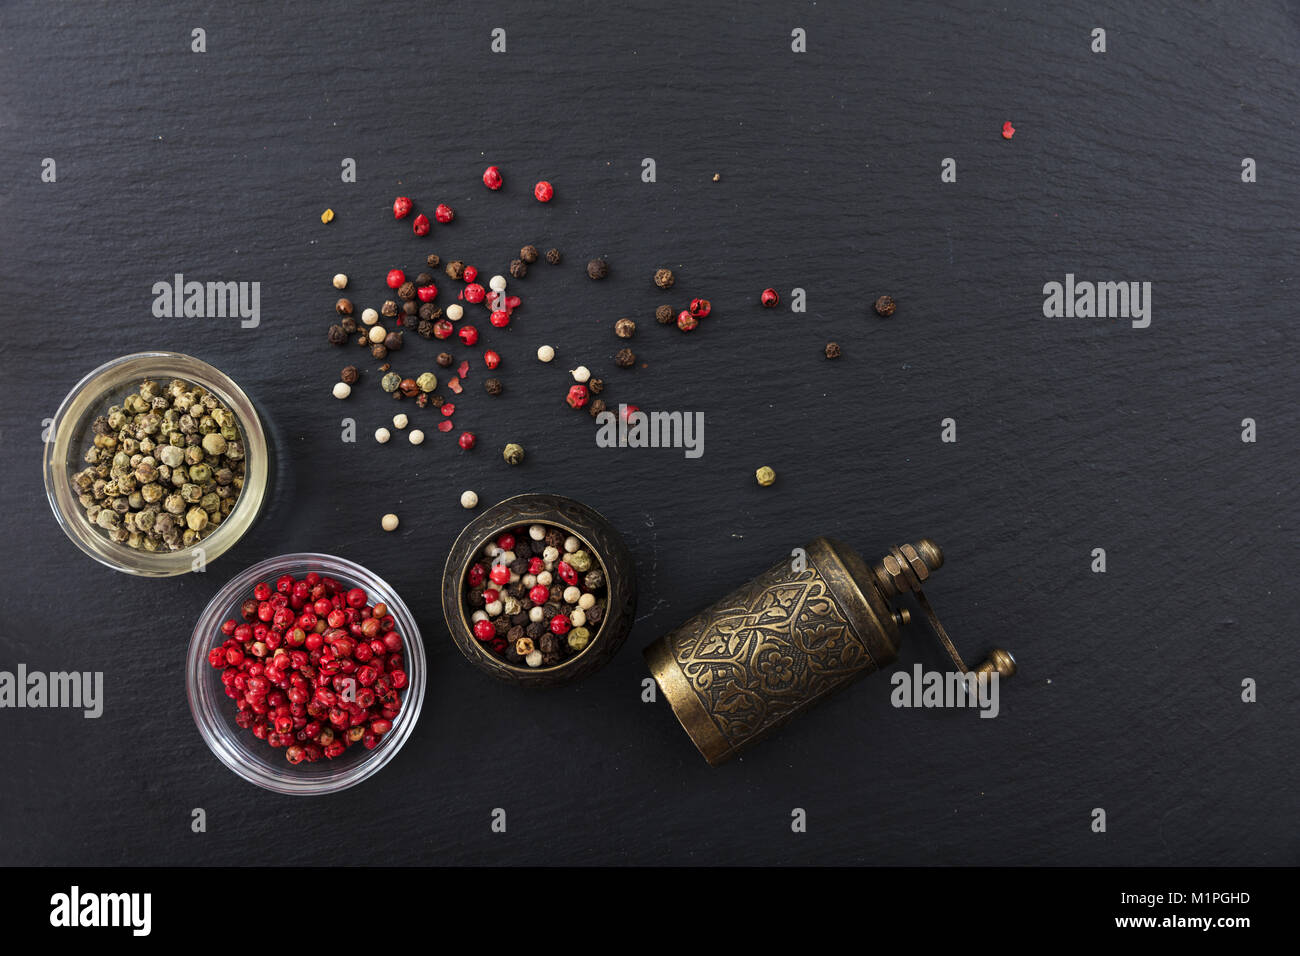 Various pepper seeds and a brass pepper mill on black stone background, top view, copy space - Stock Image